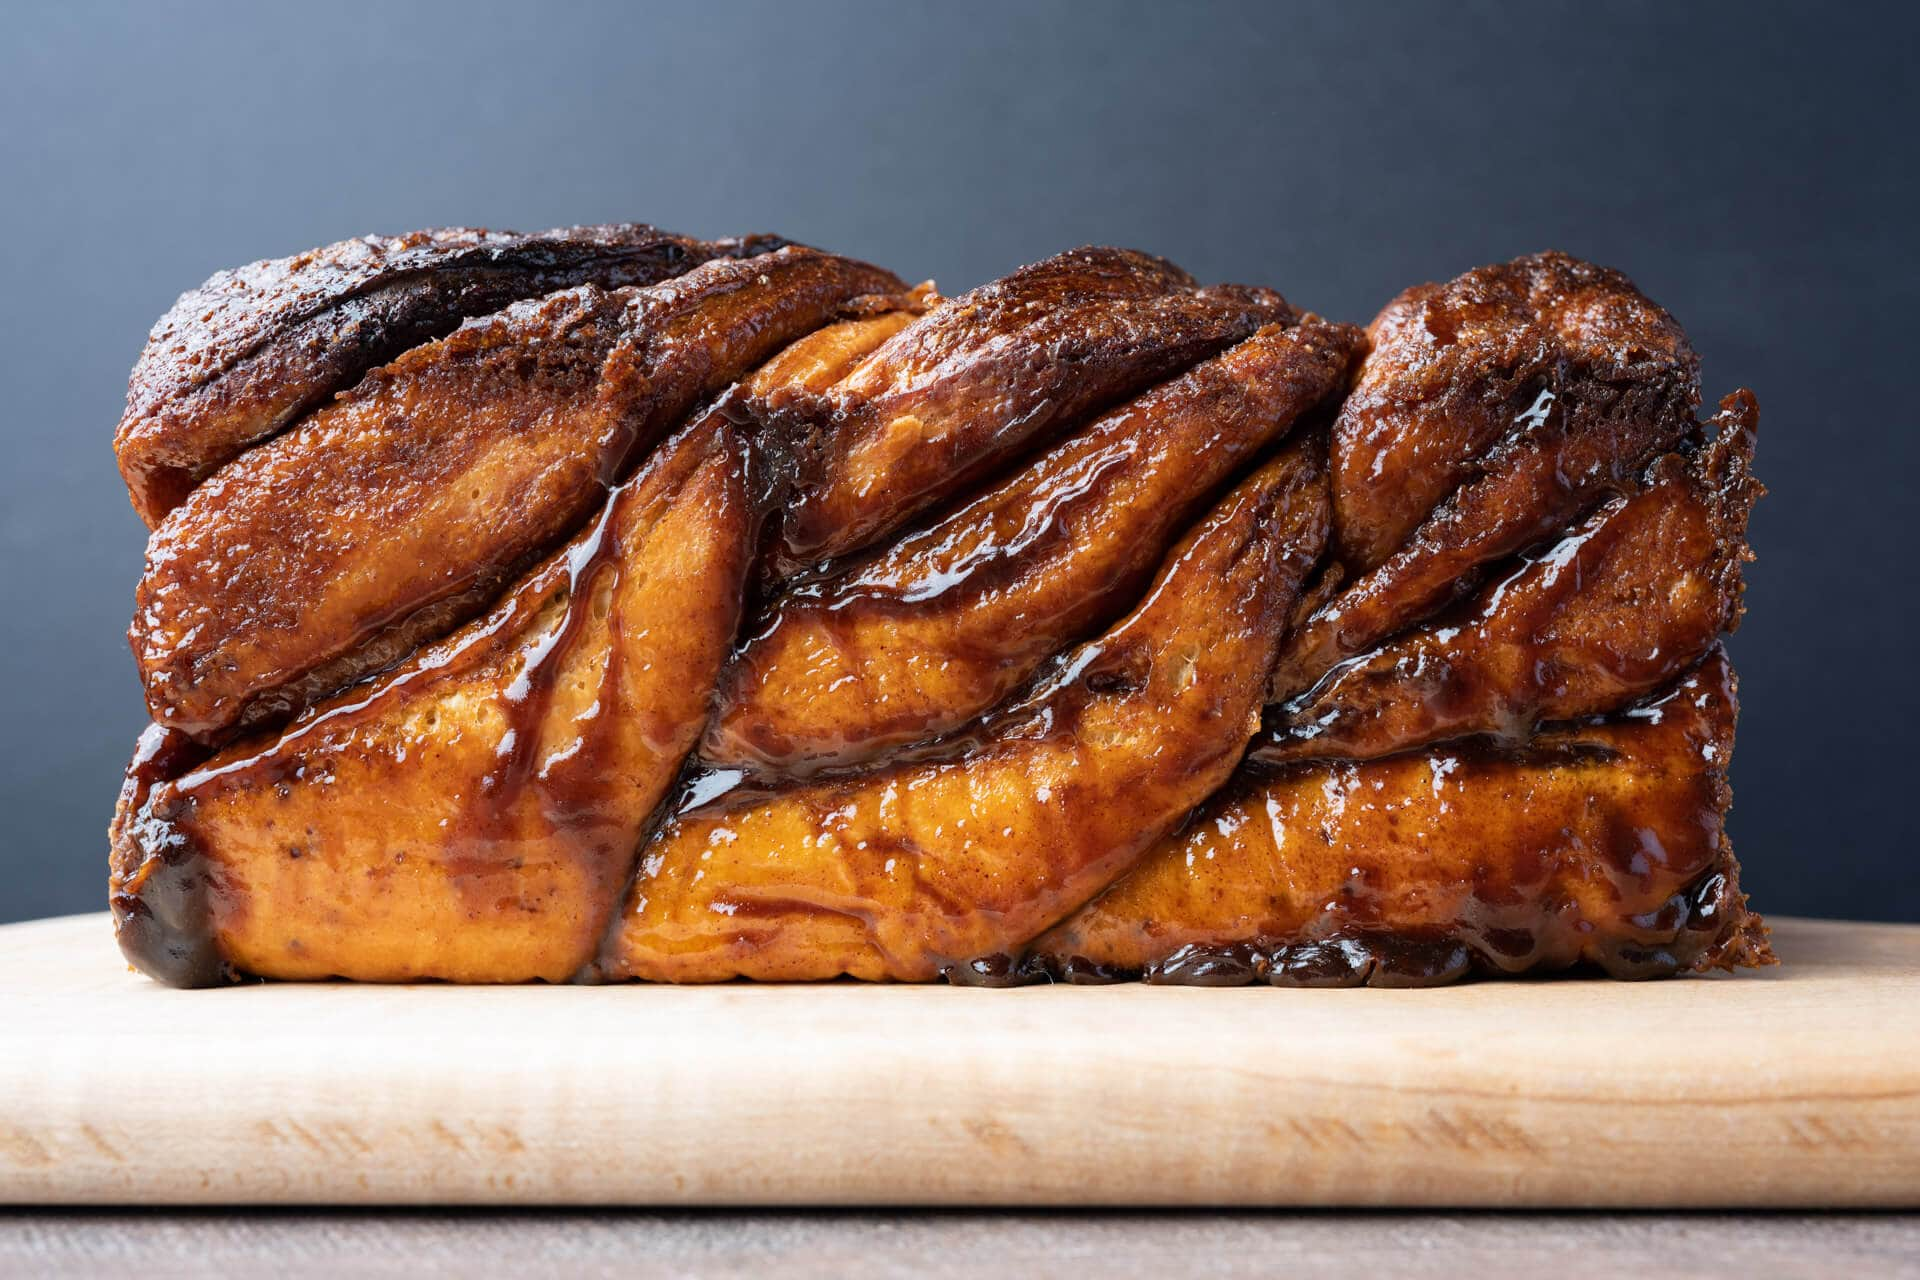 Sourdough babka exterior